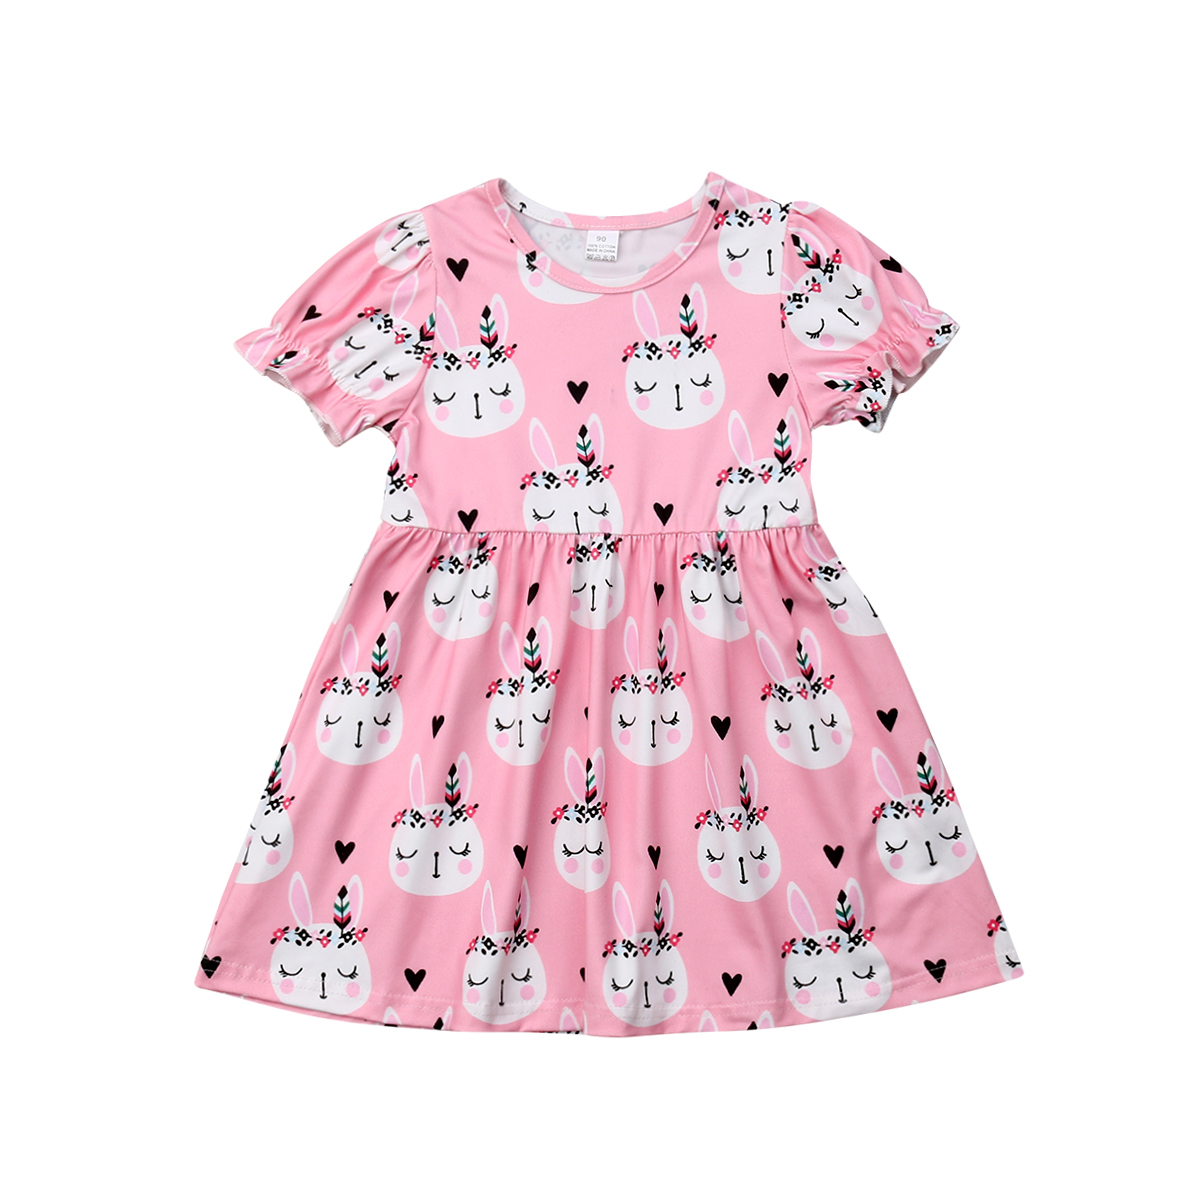 pudcoco 2019 summer pink toddler girls easter dress